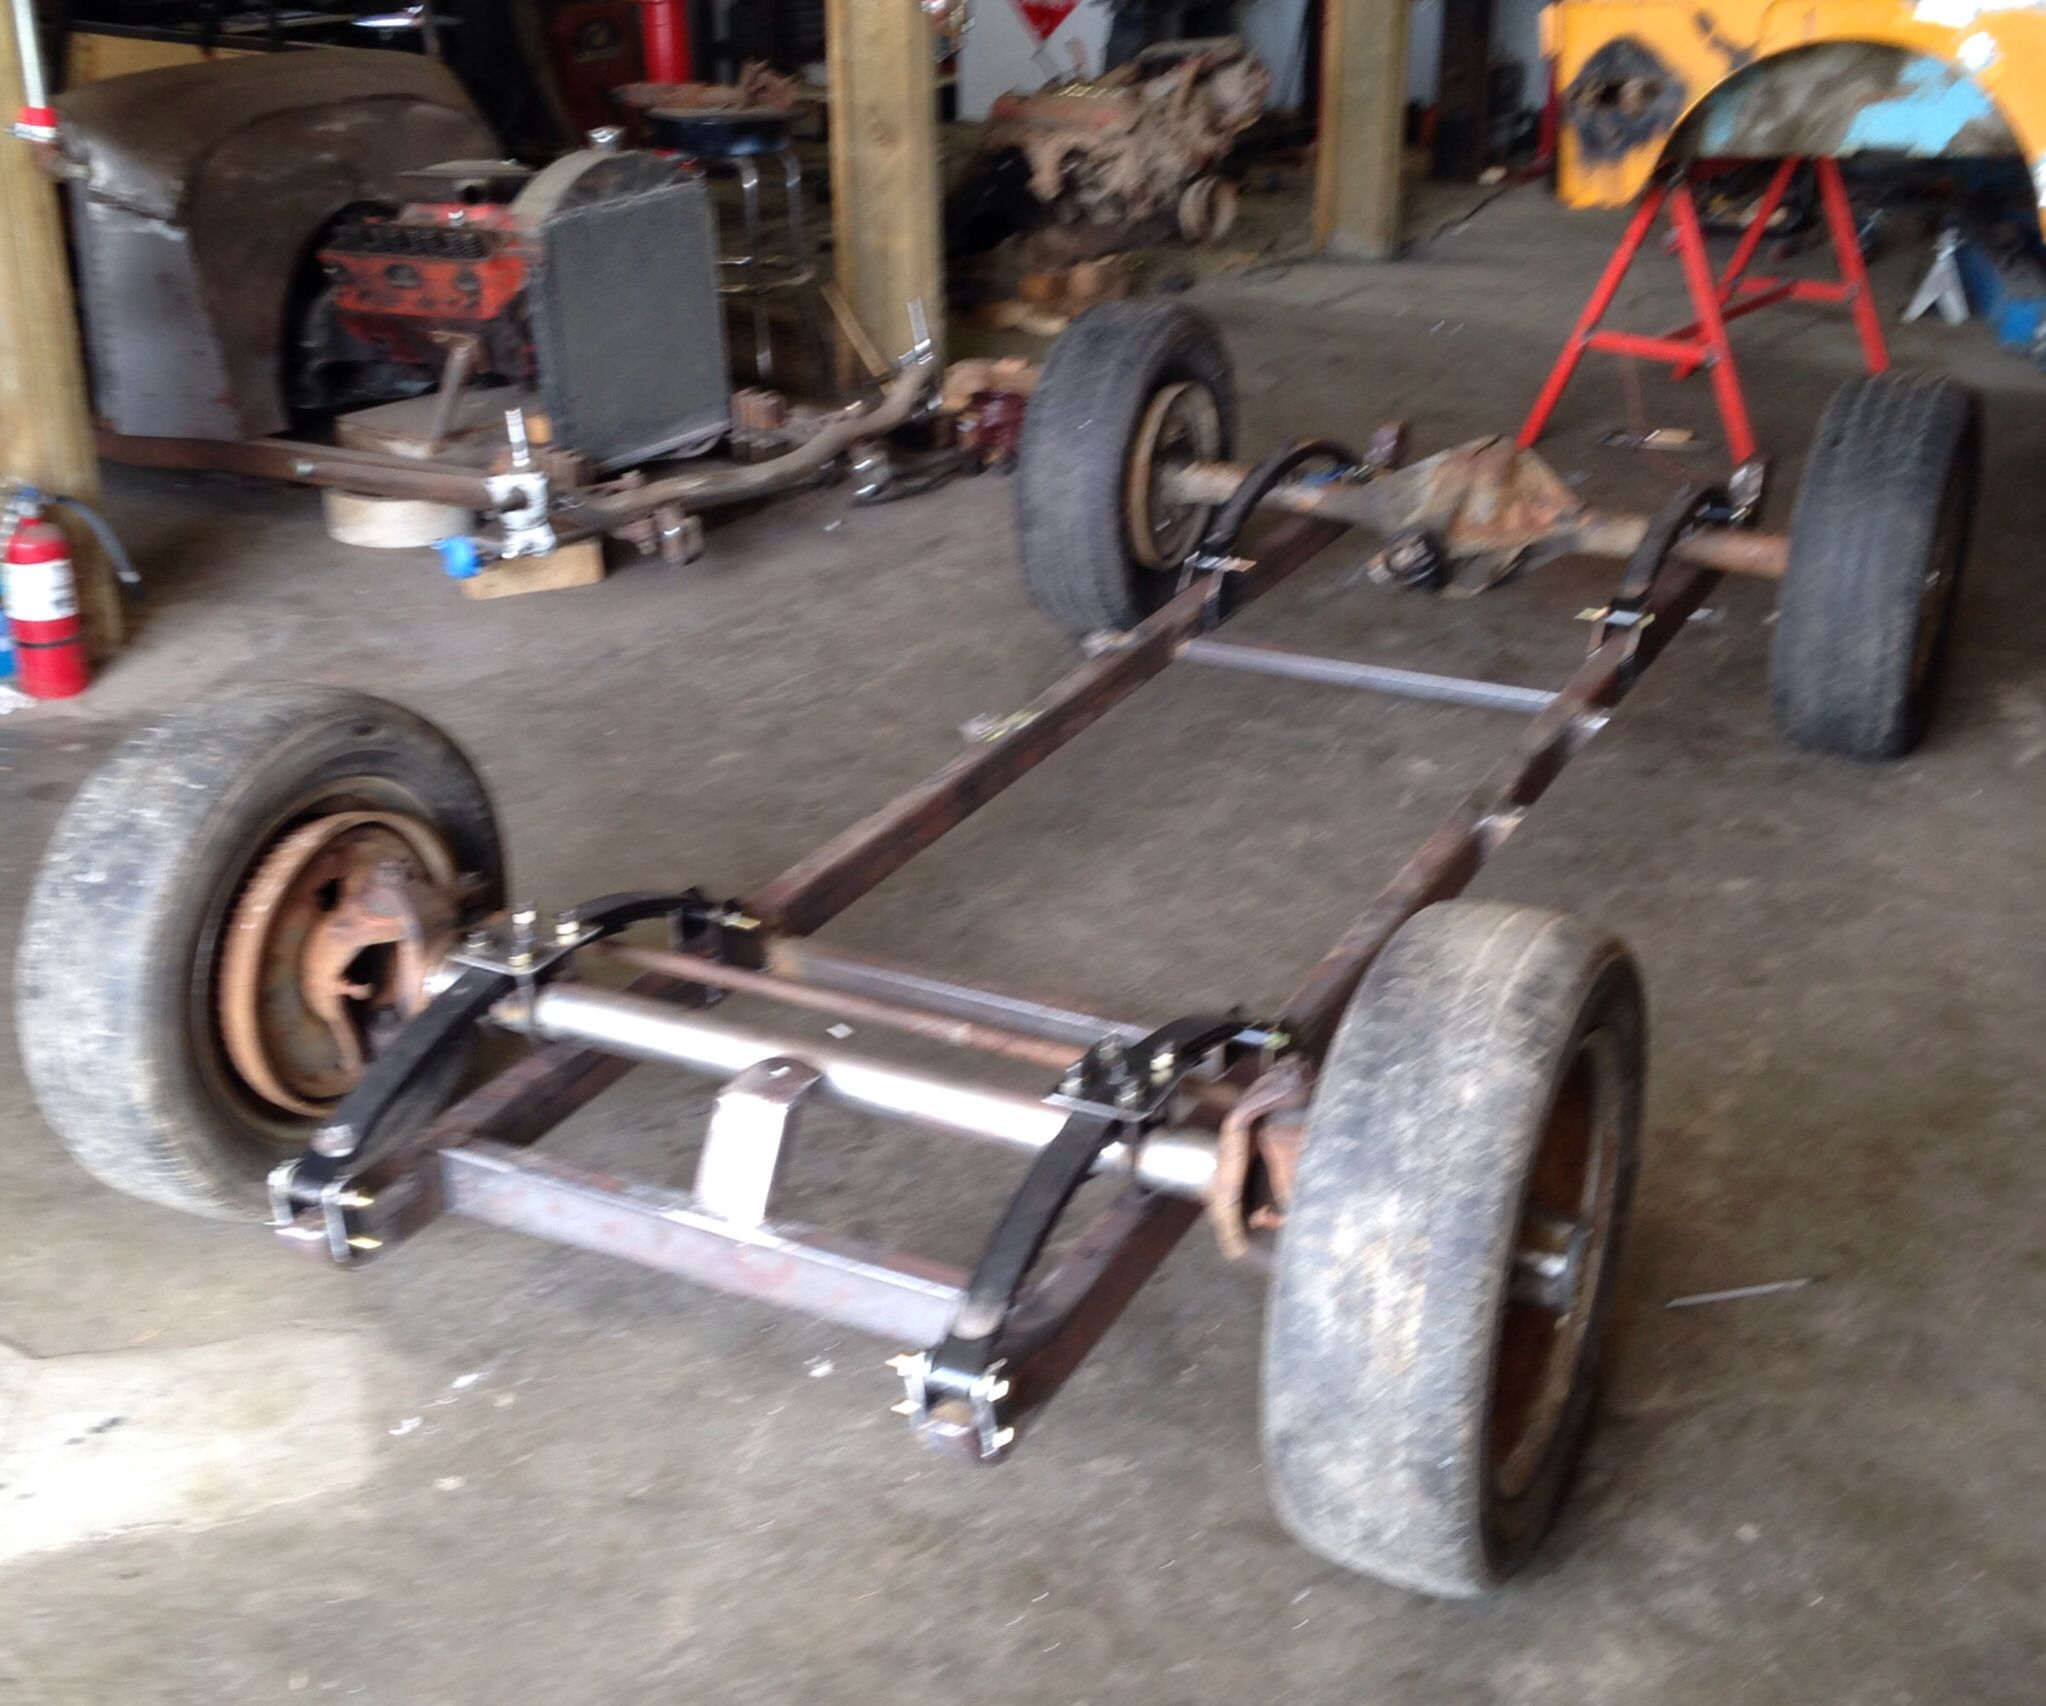 New Frame Ted Auldur Hot Rods Diesel Rat Rod Rat Rod